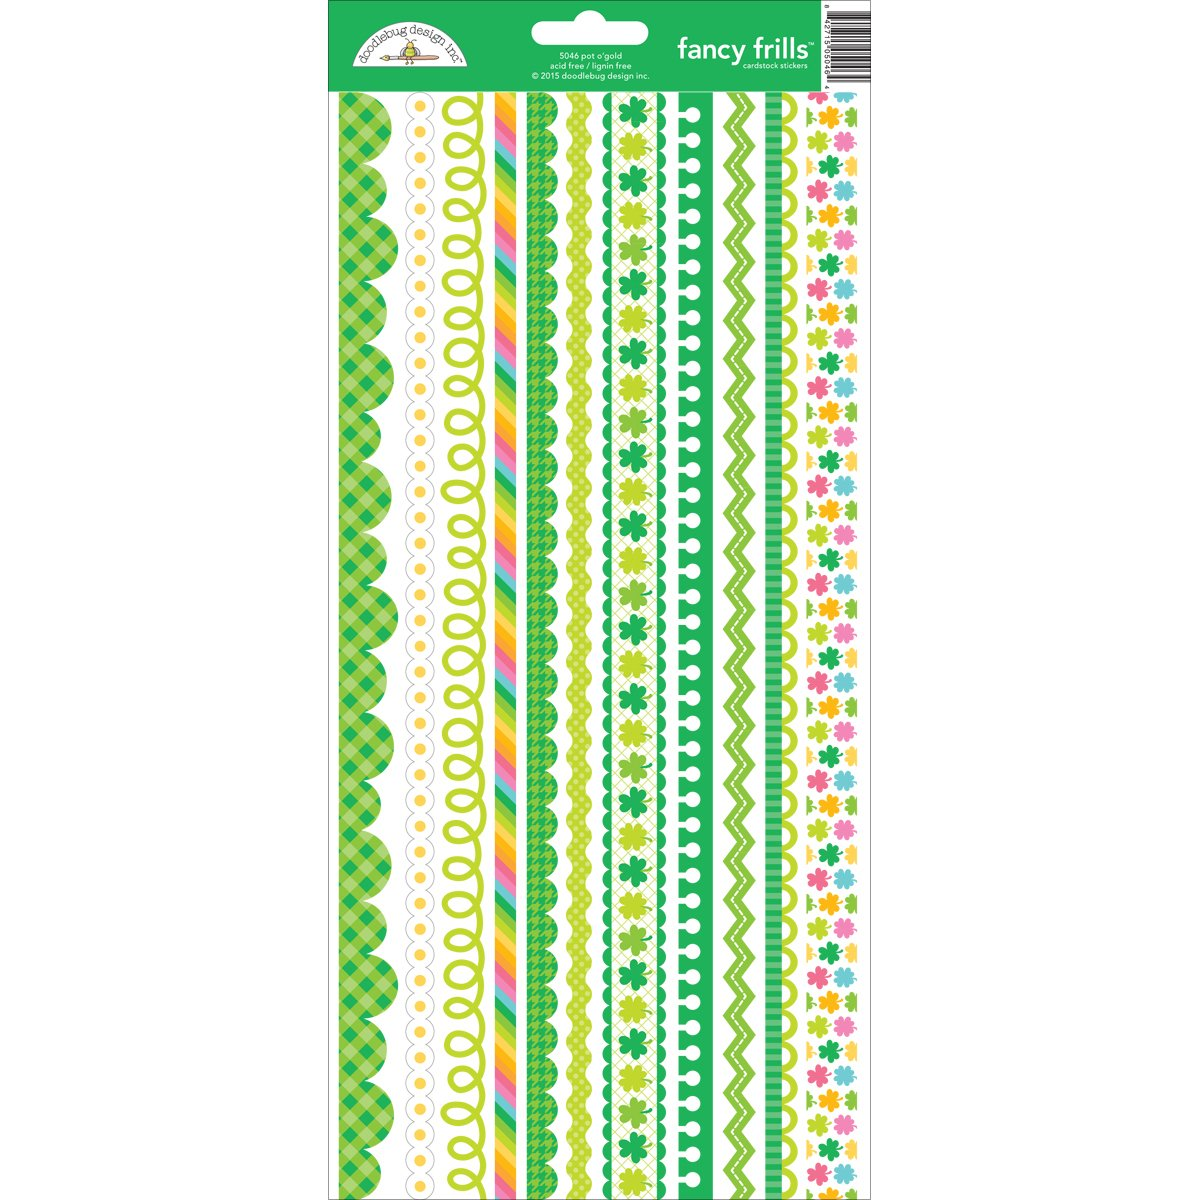 Doodlebug 5046 Pot O'gold Cardstock Stickers, 6 x 13, Fancy Frills by DOODLEBUG B018GFZZPU